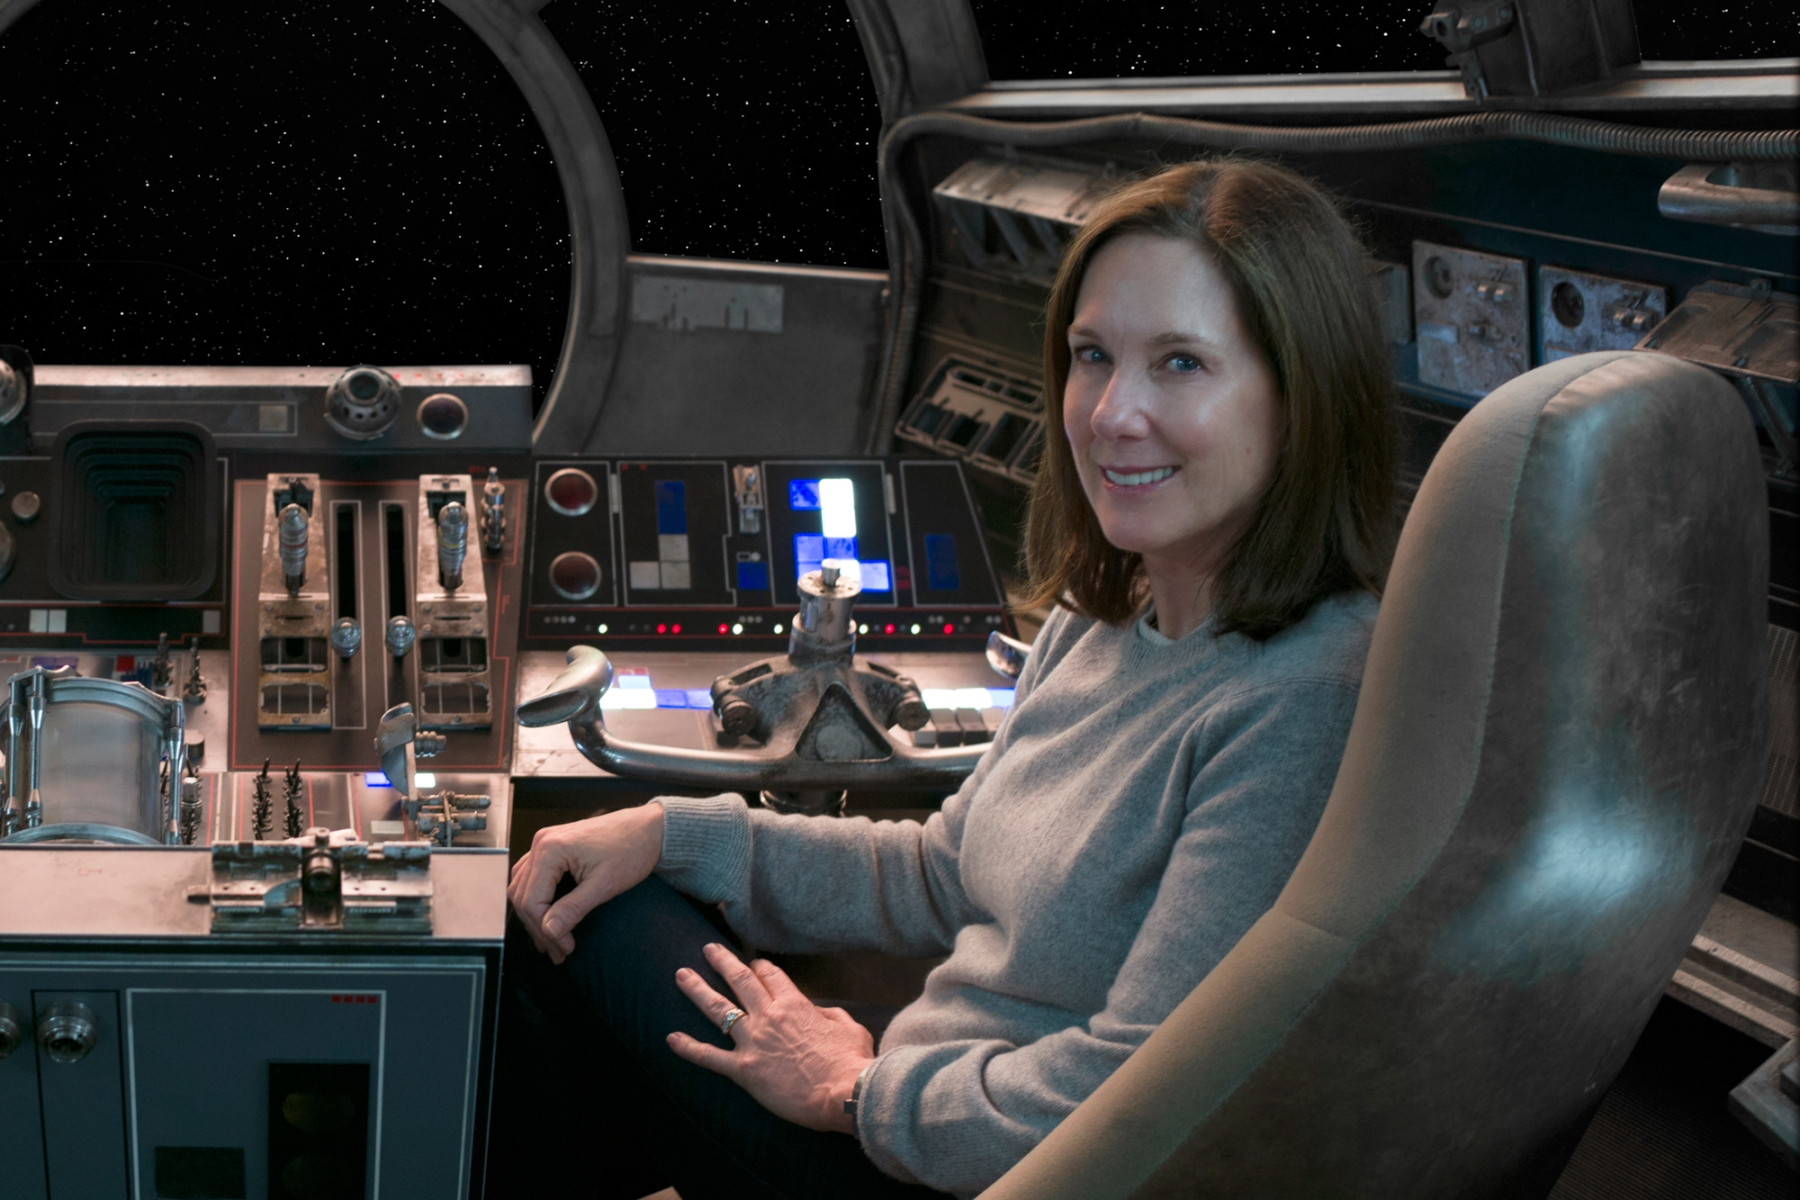 Star Wars: The Force Awakens..L to R: Director/Producer/Screenwriter J.J. Abrams and Producer Kathleen Kennedy..Ph: David James..©Lucasfilm 2015